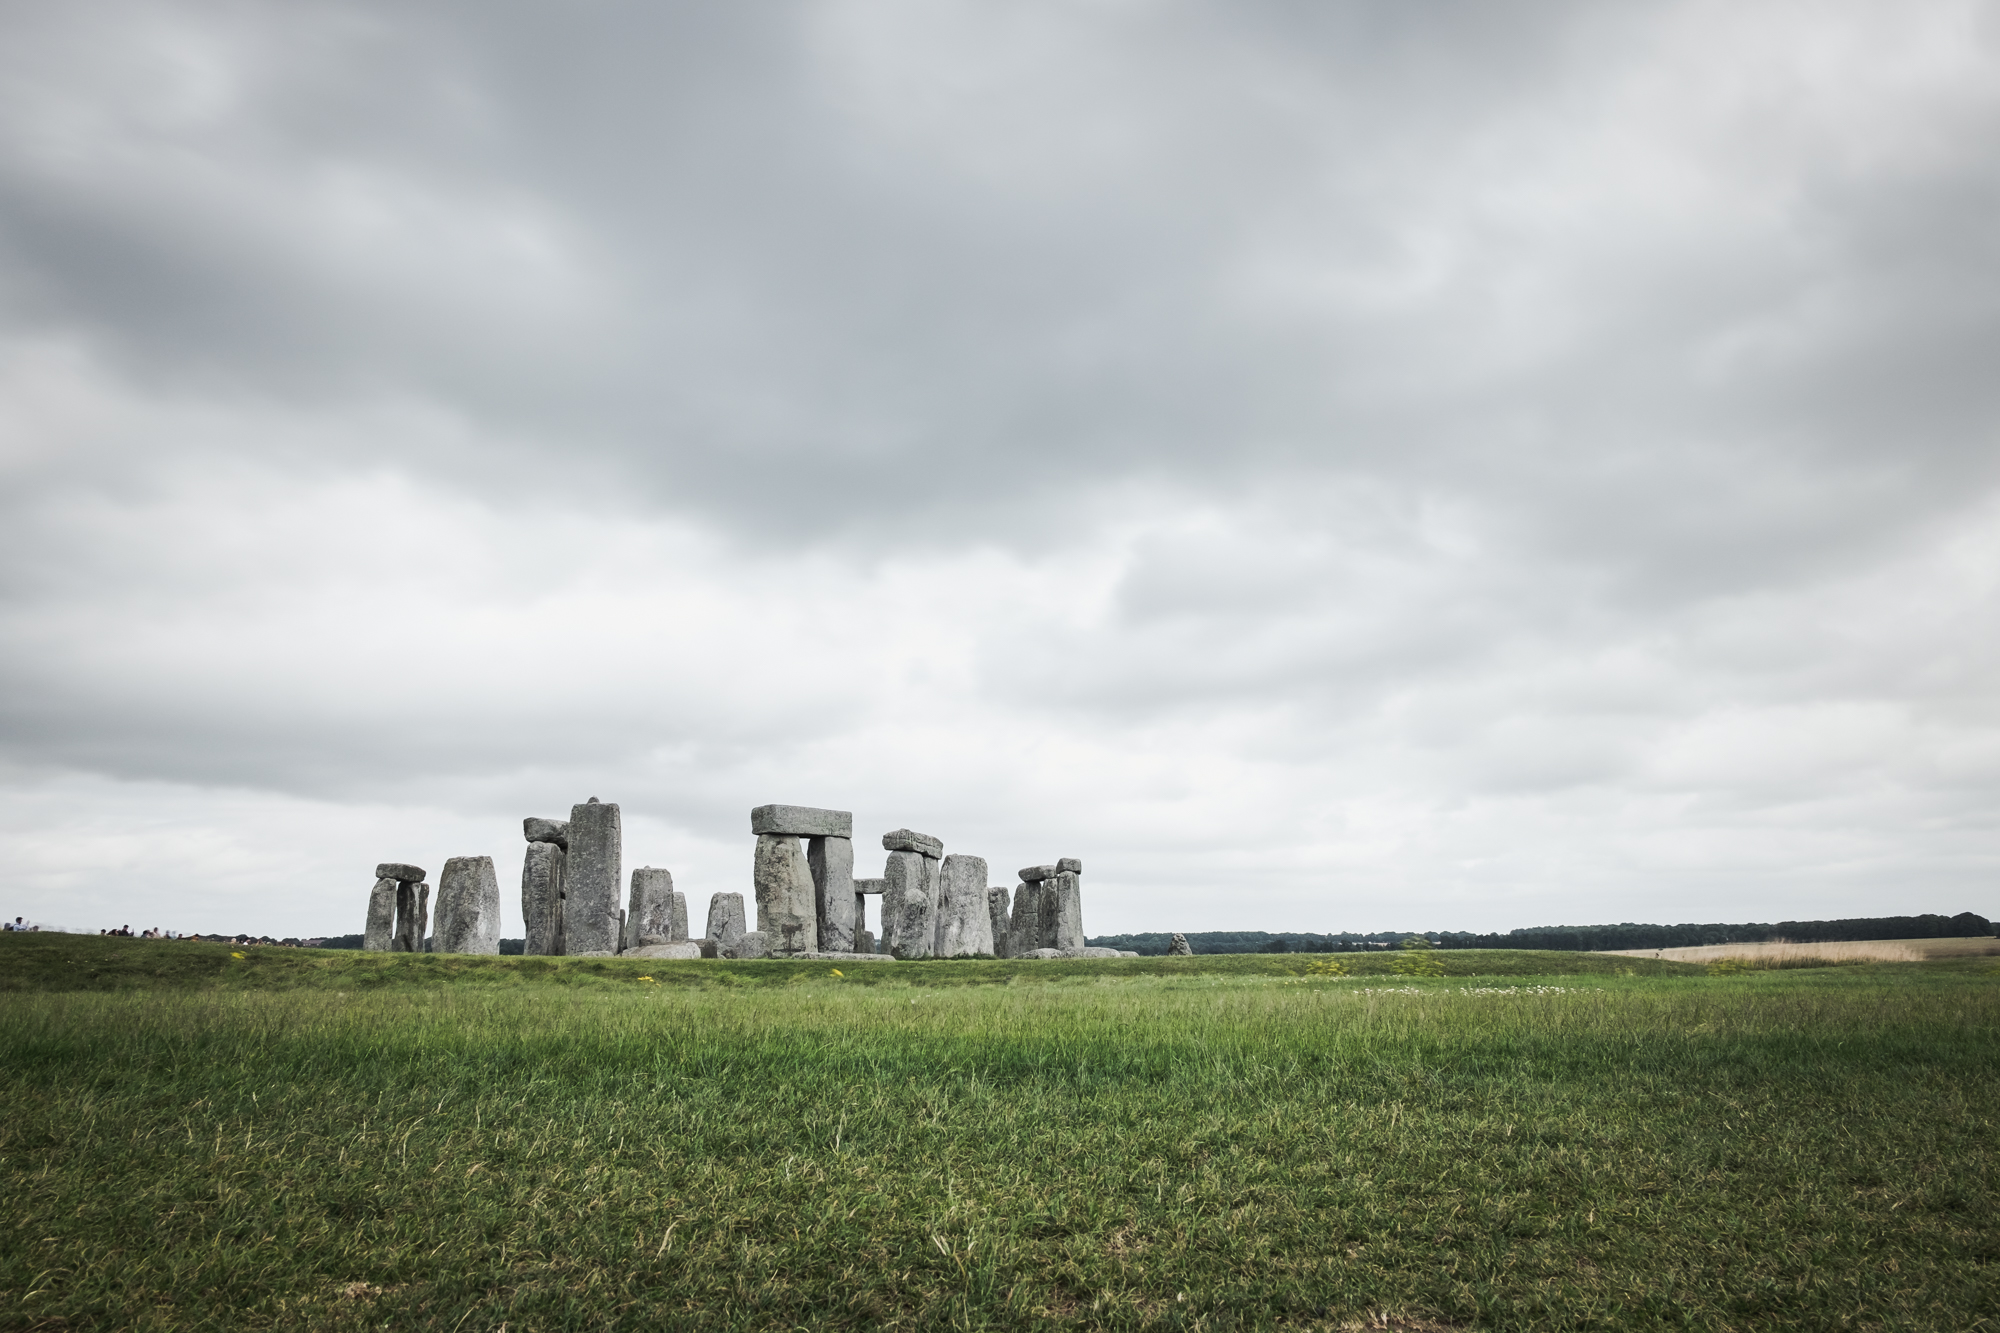 Landscape photo of StoneHenge, UK by Trevor Sherwin